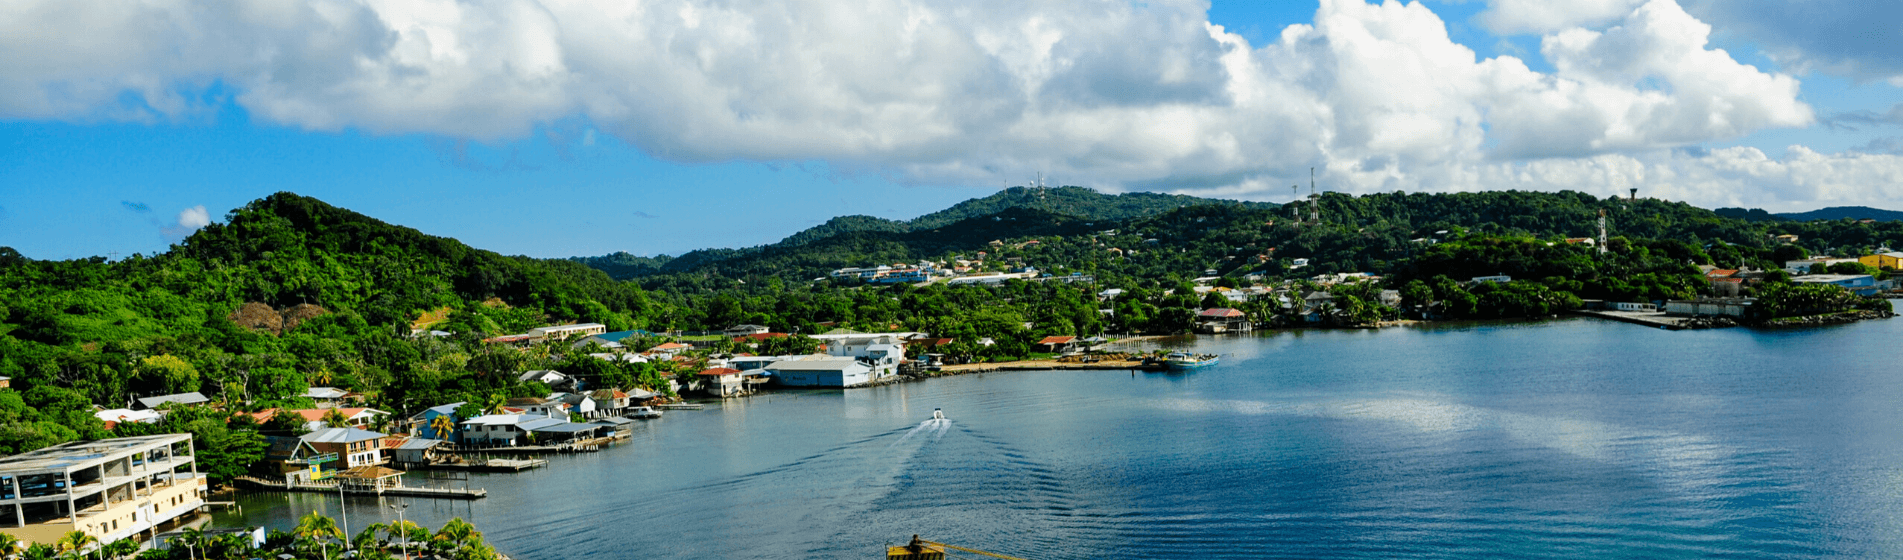 LIVING IN ROATAN A GUIDE TO THE HONDURAS BAY ISLANDS